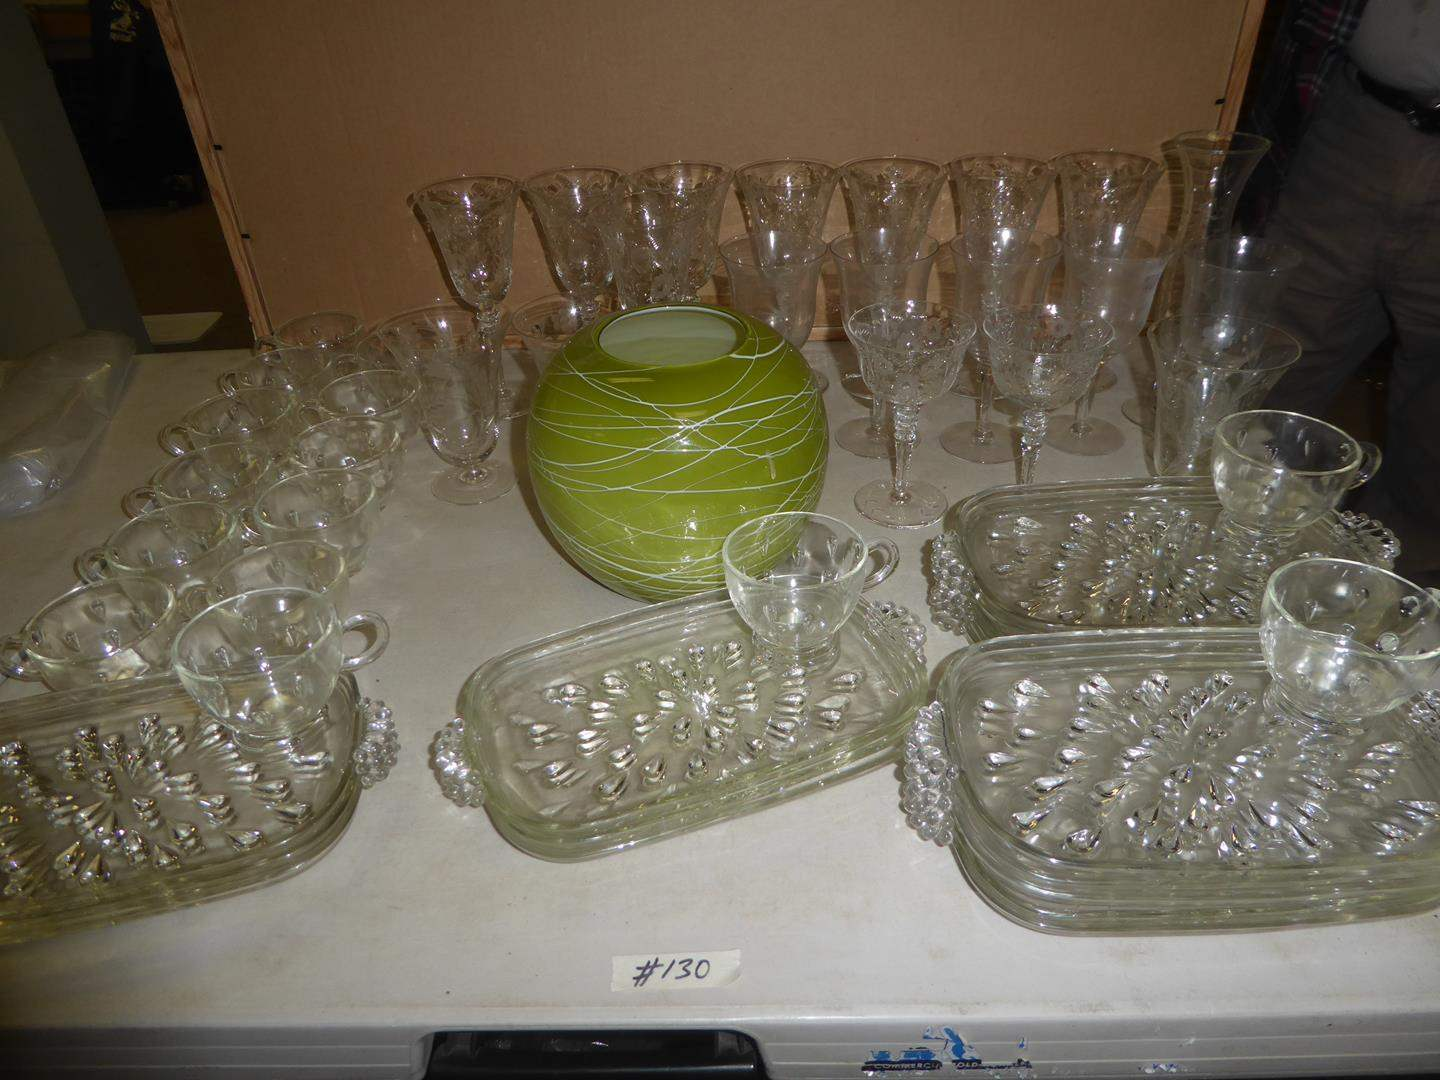 Lot # 130 - Vintage Glass Snack Trays w/Cups, Beautiful Etched Stemware & Apple Glass Vase (main image)